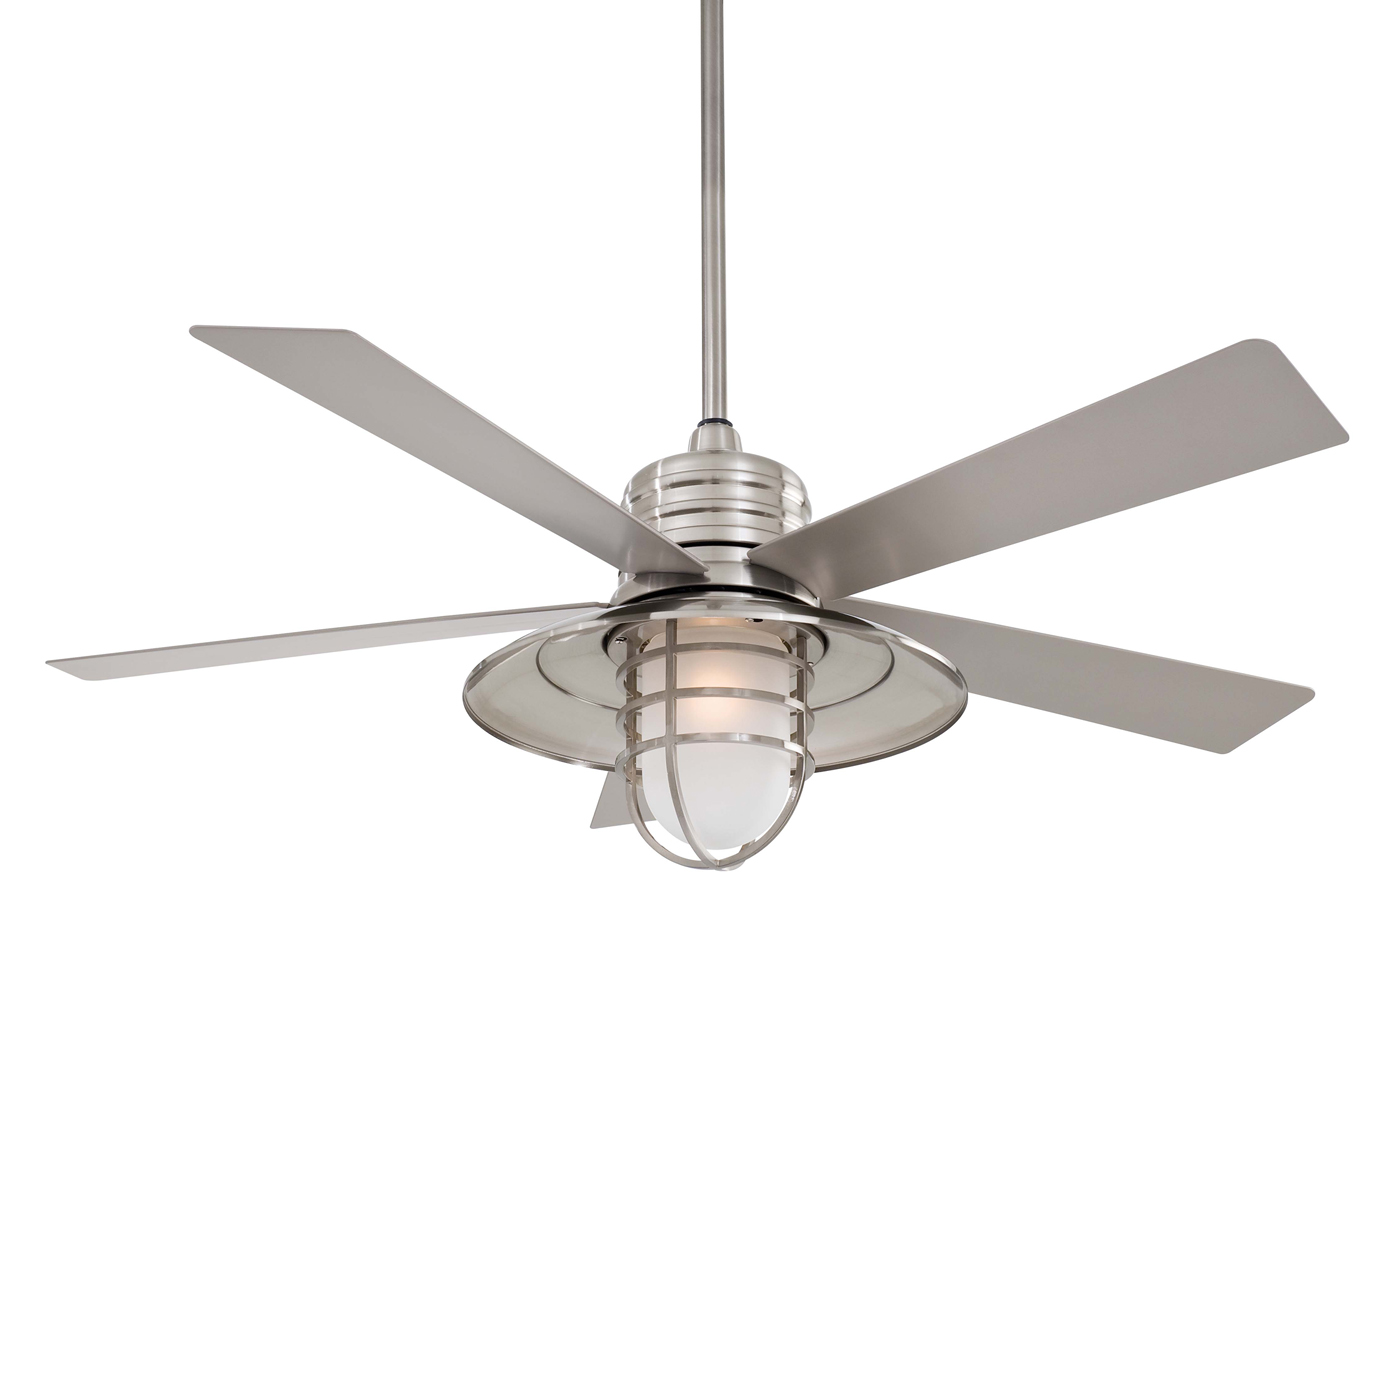 Small Lighted Ceiling Fans 10 Adventages Of Small Outdoor Ceiling Fans Warisan Lighting